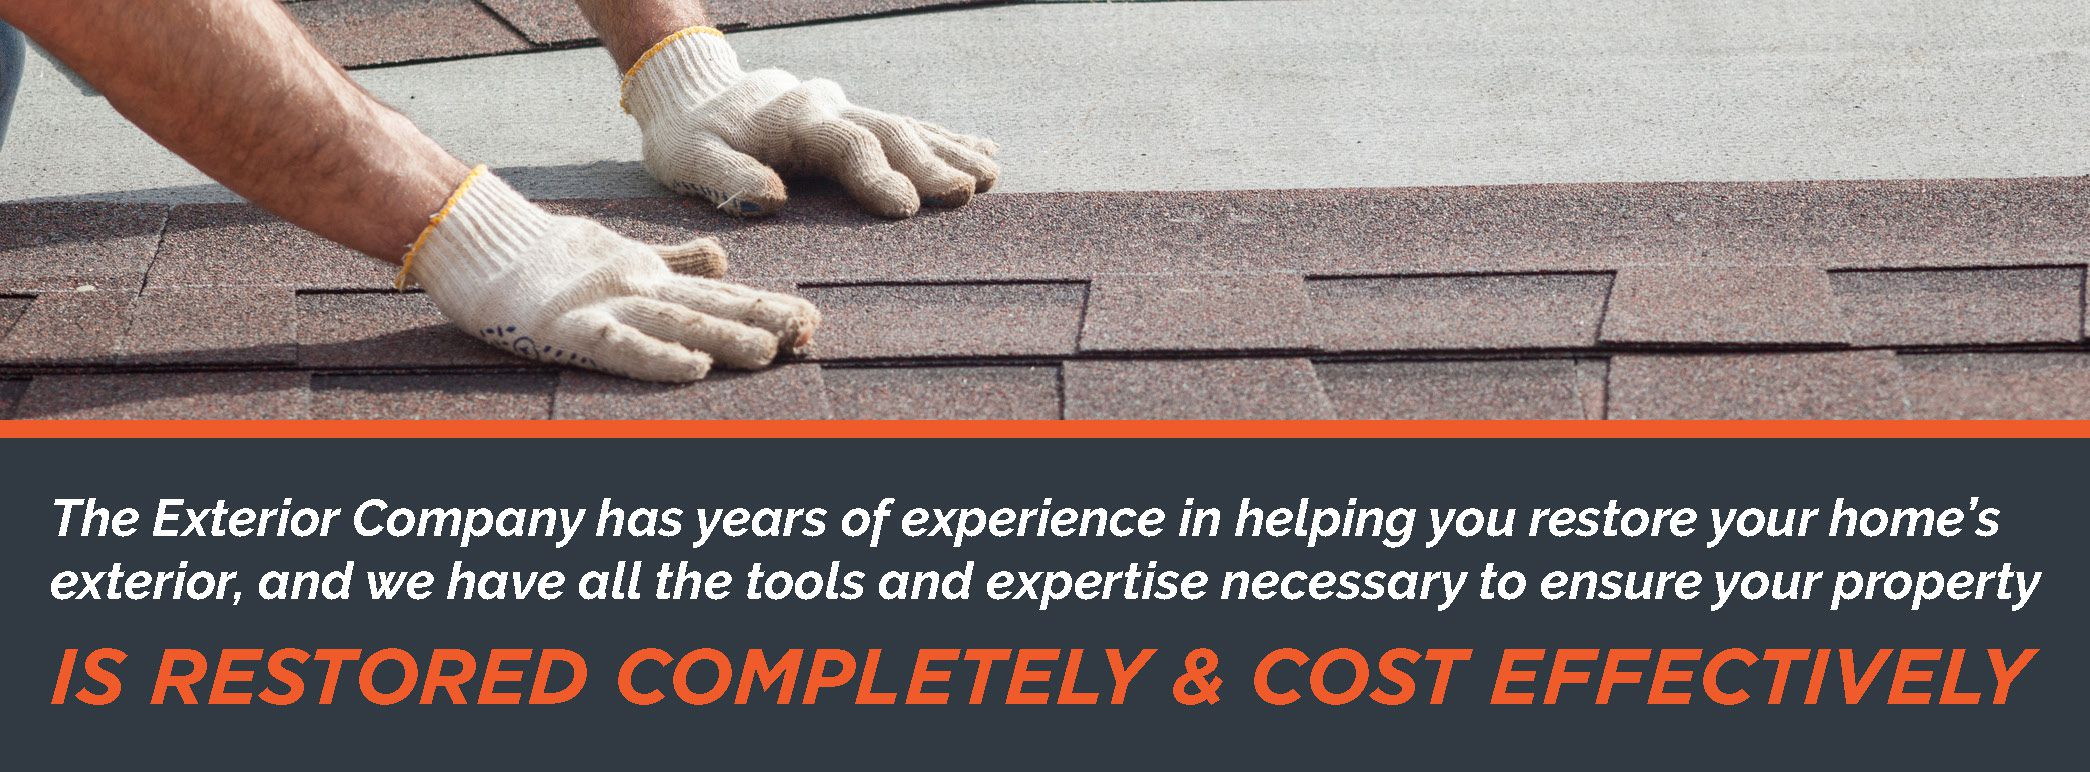 Contact The Exterior Company for professional help